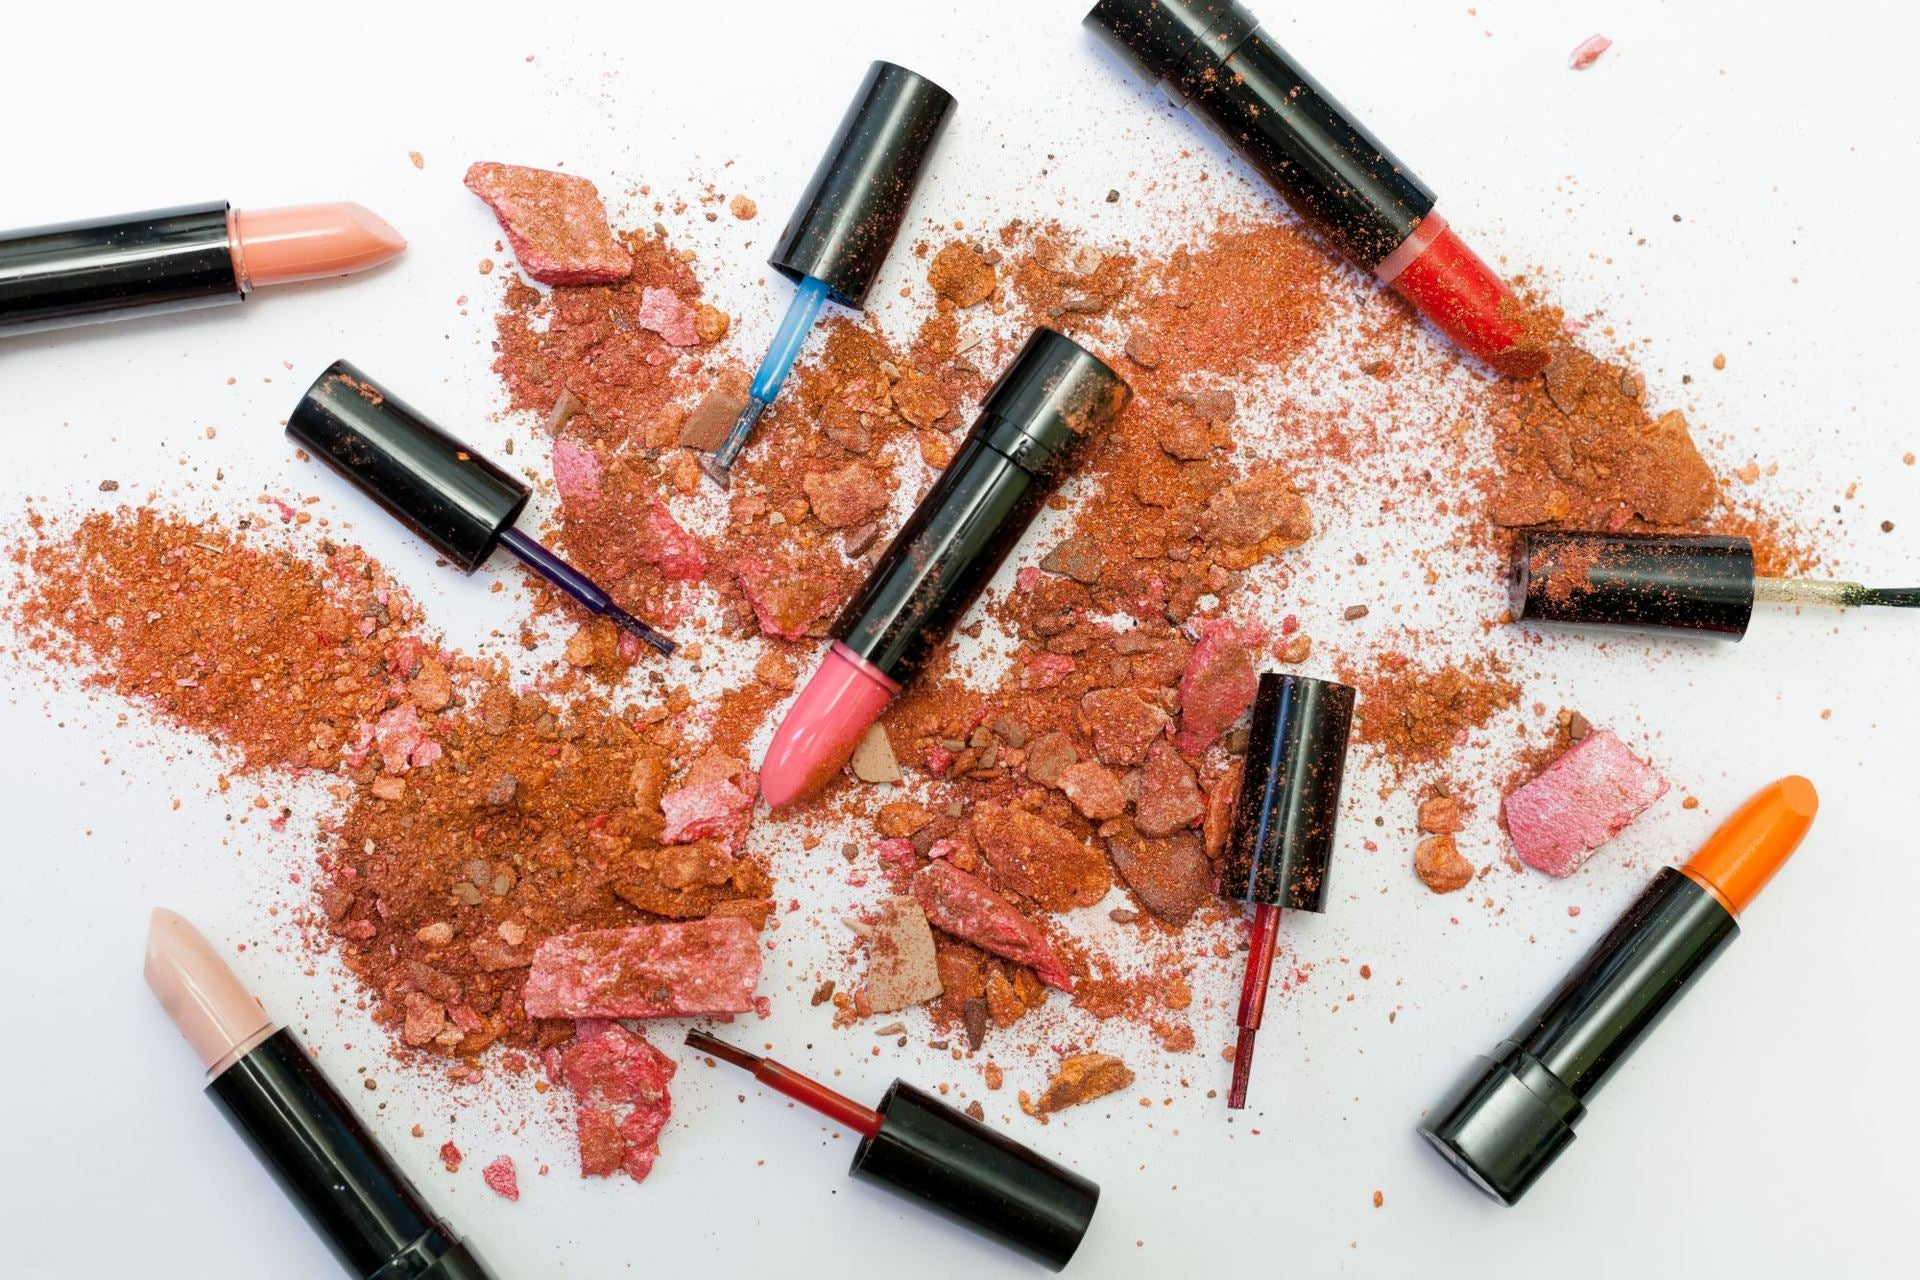 Best Selling Cosmetics